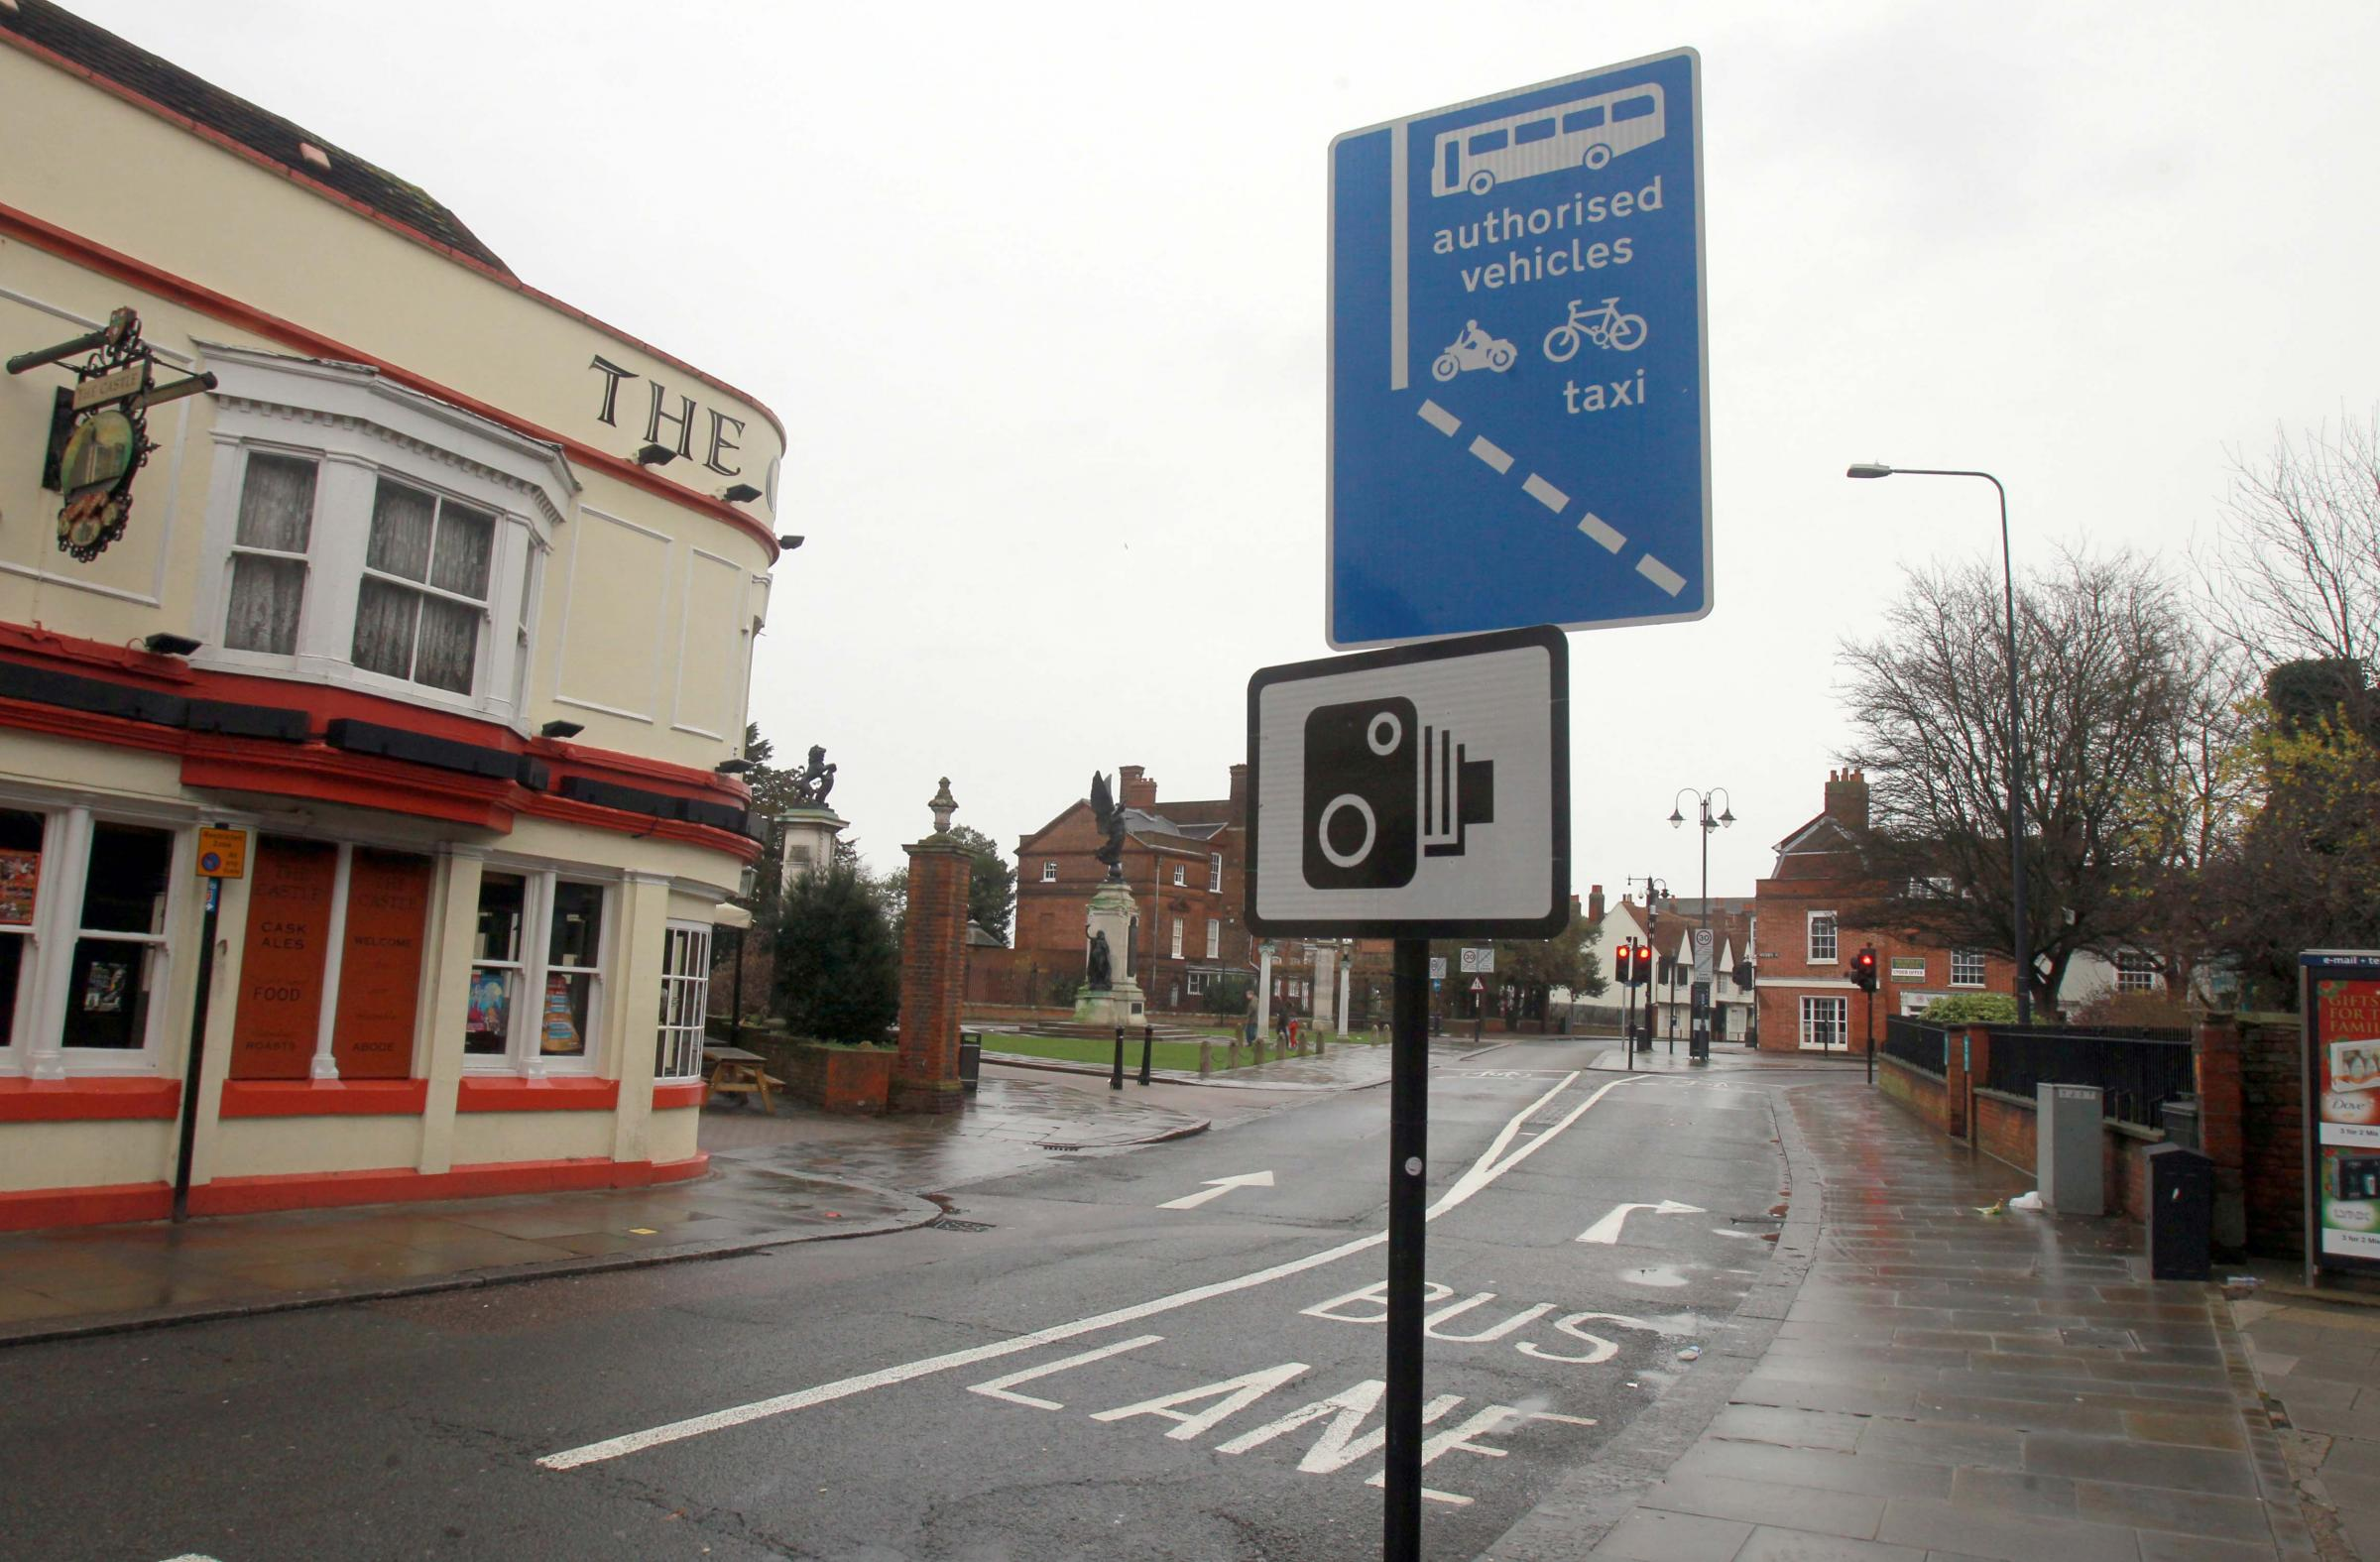 More than 1,000 sign up to petition against bus lane fines